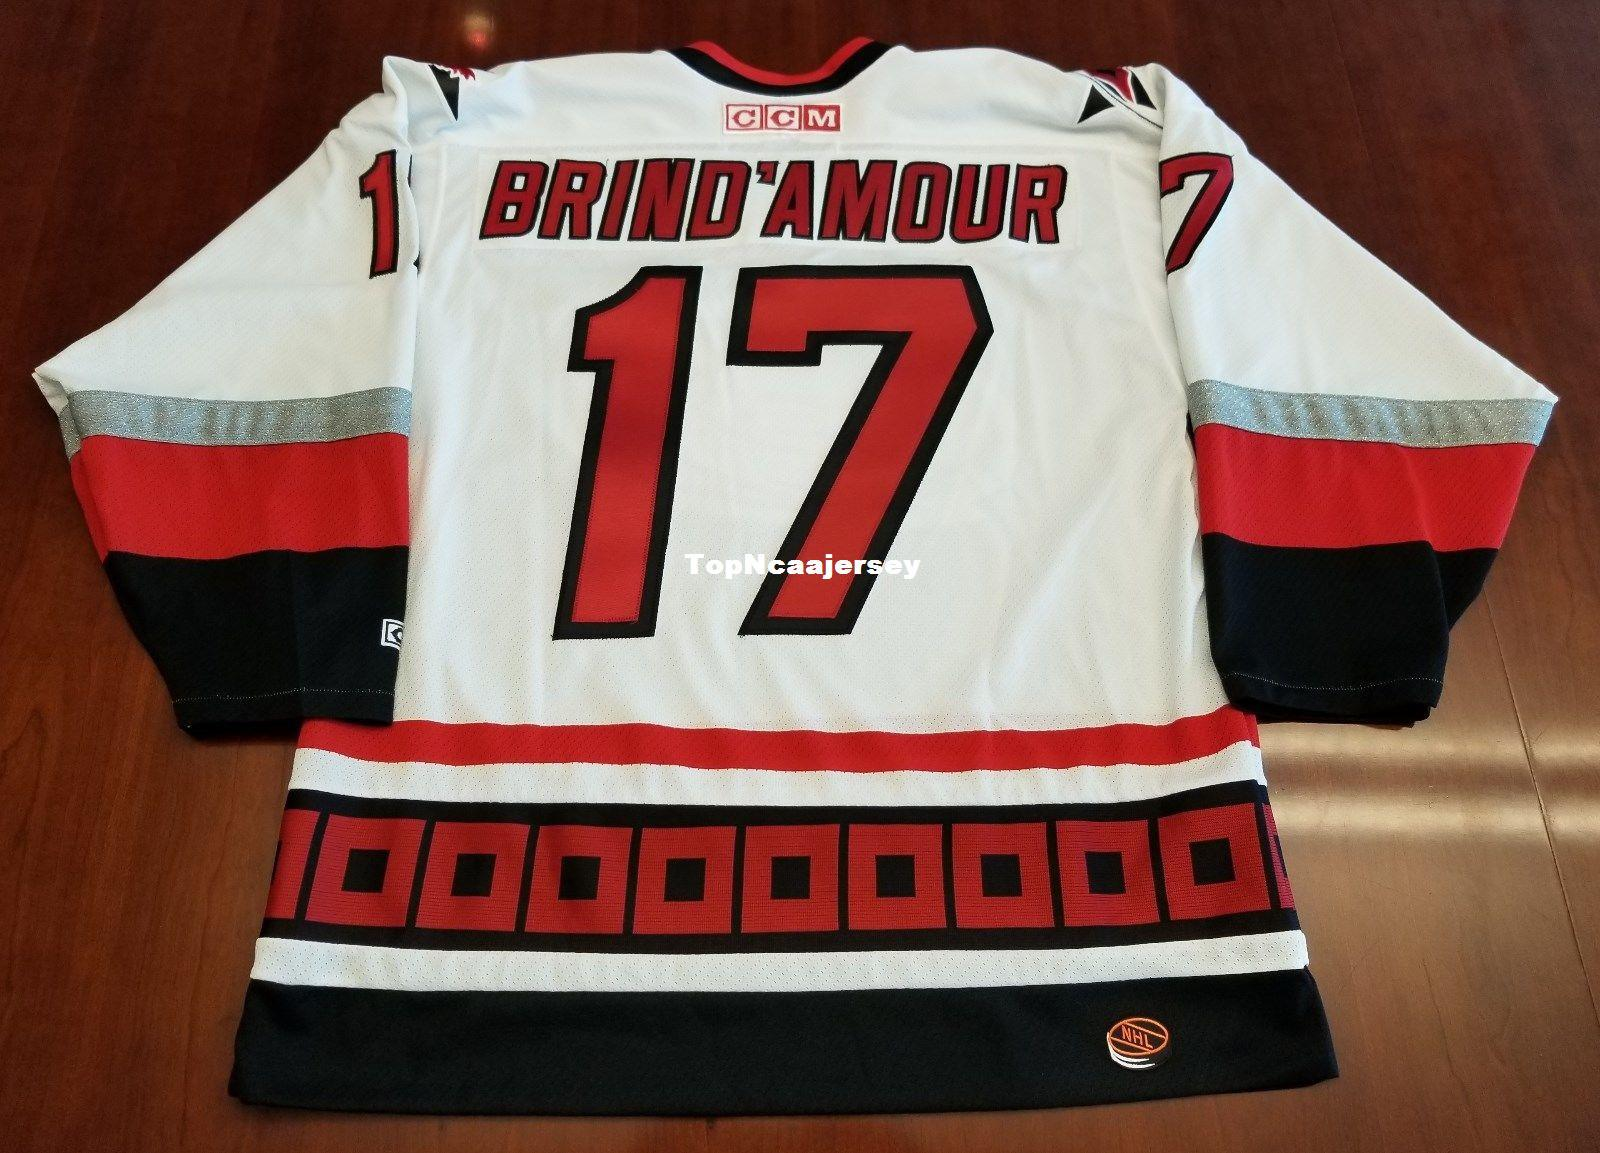 3da6b159 2019 Wholesale Rob Brind'Amour Vintage Carolina Hurricanes CCM Cheap Hockey  Jersey White Mens Retro Jerseys From Topncaajersey, $25.2 | DHgate.Com